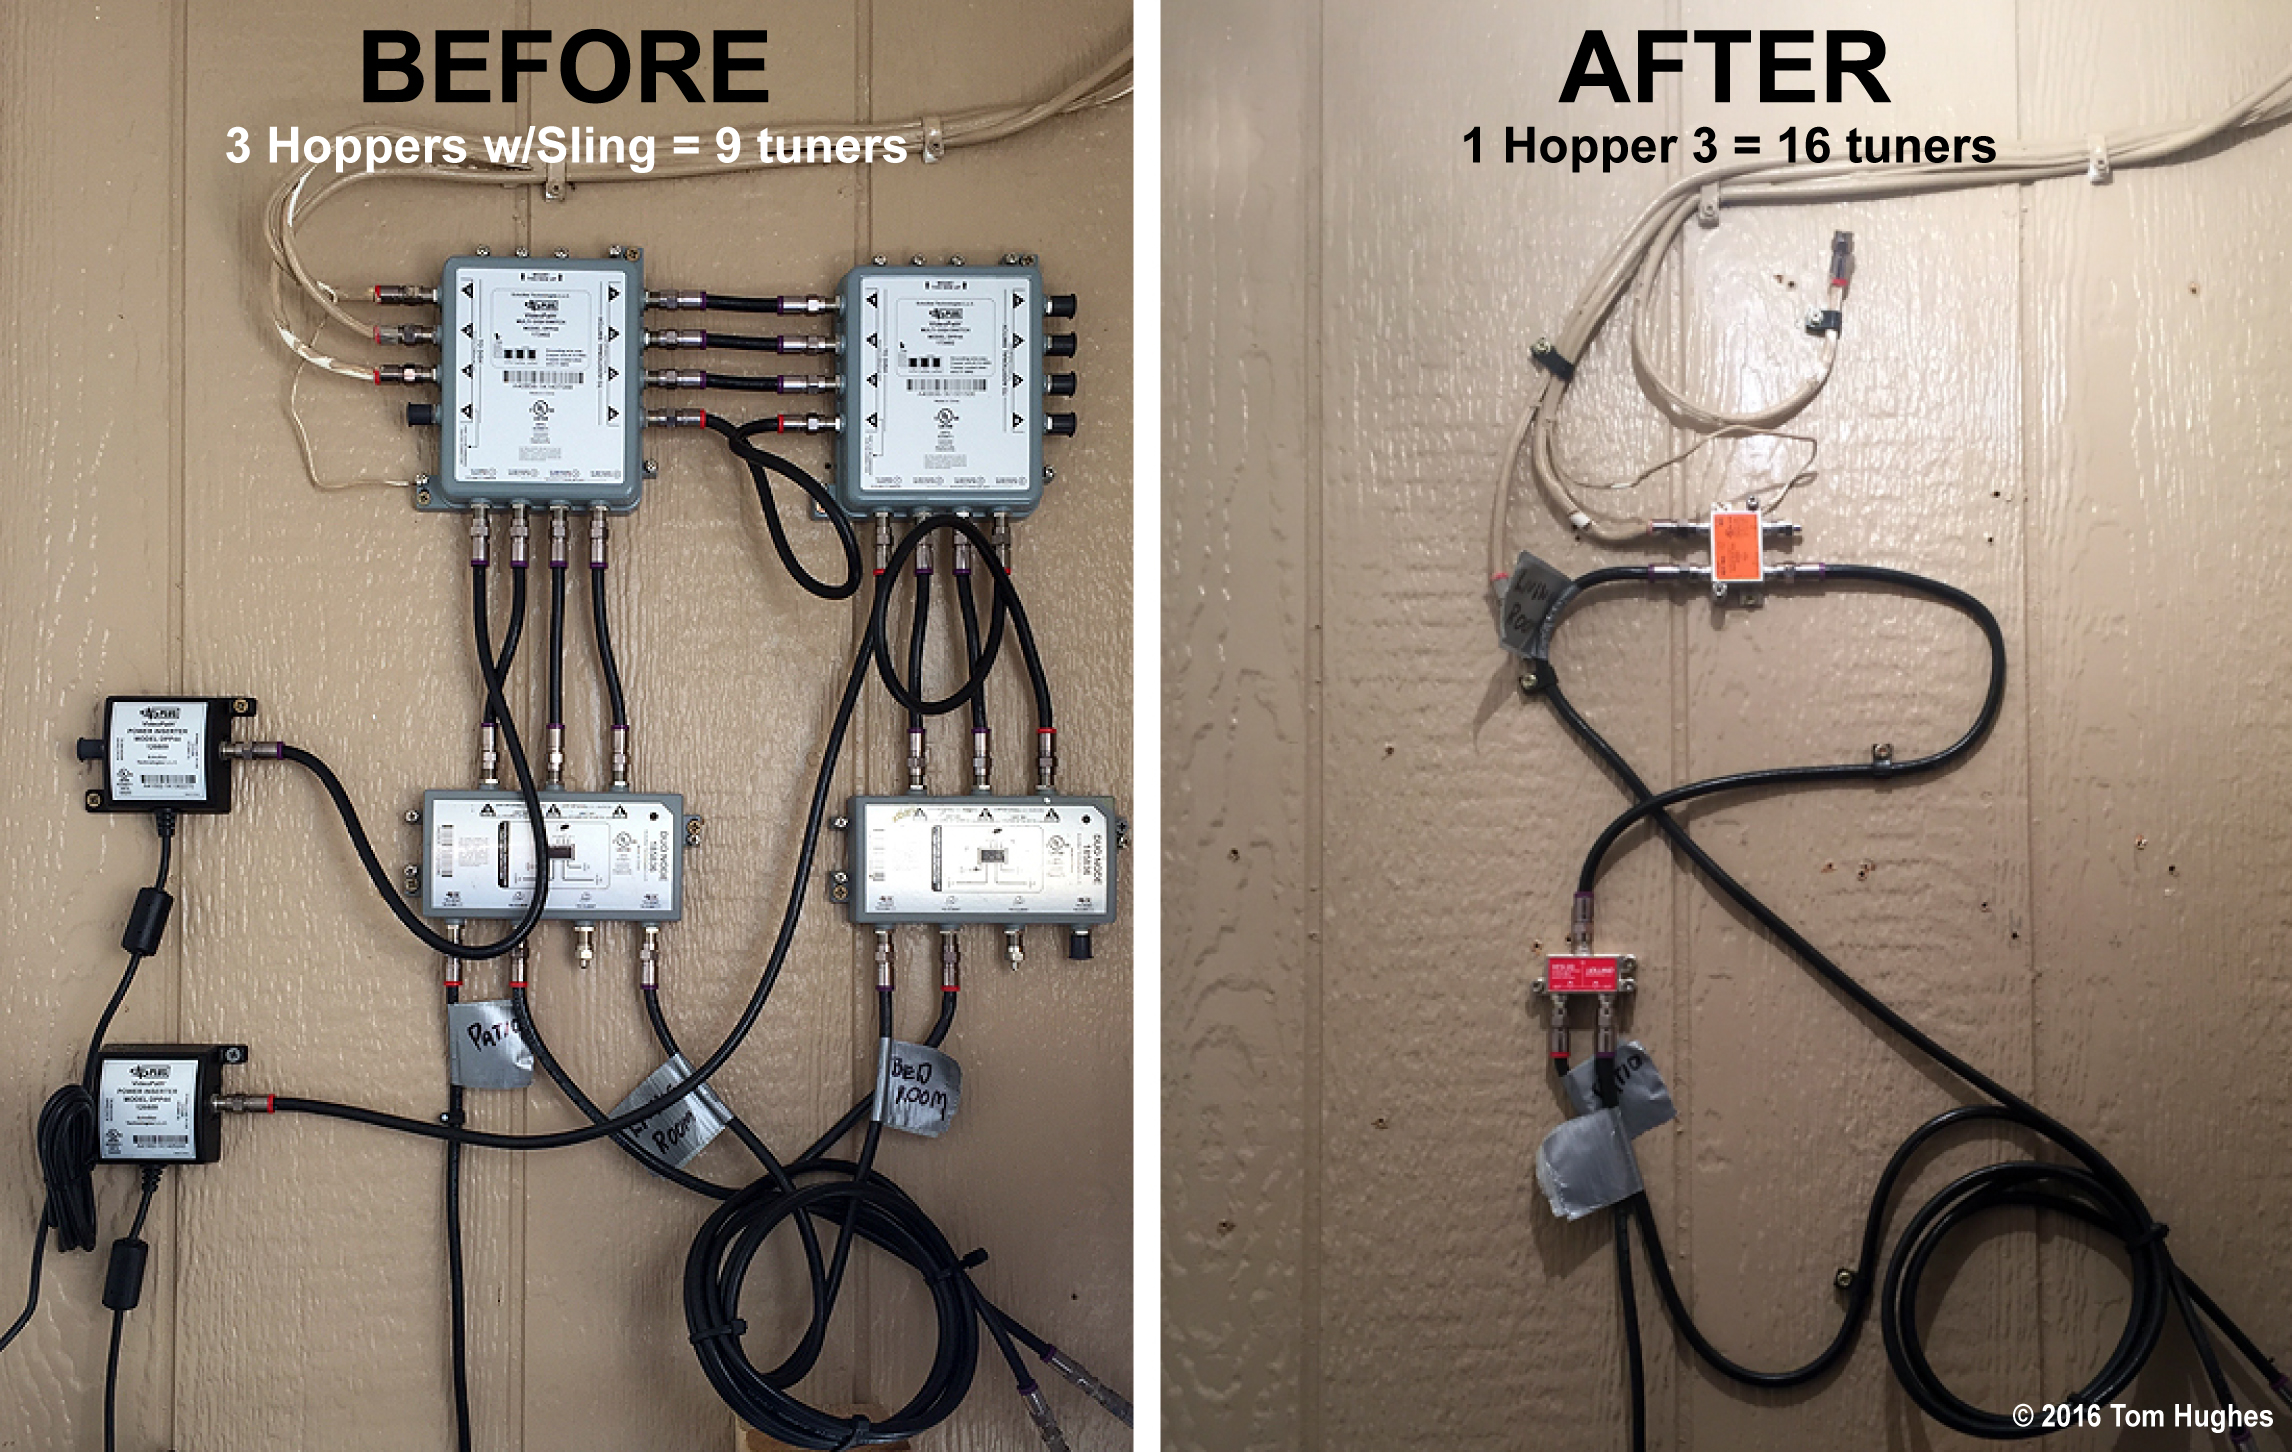 hopper3_install03_before after wiring?resize=665%2C421 dish tv hopper wiring diagram the best wiring diagram 2017 dish network hopper wiring diagram at nearapp.co